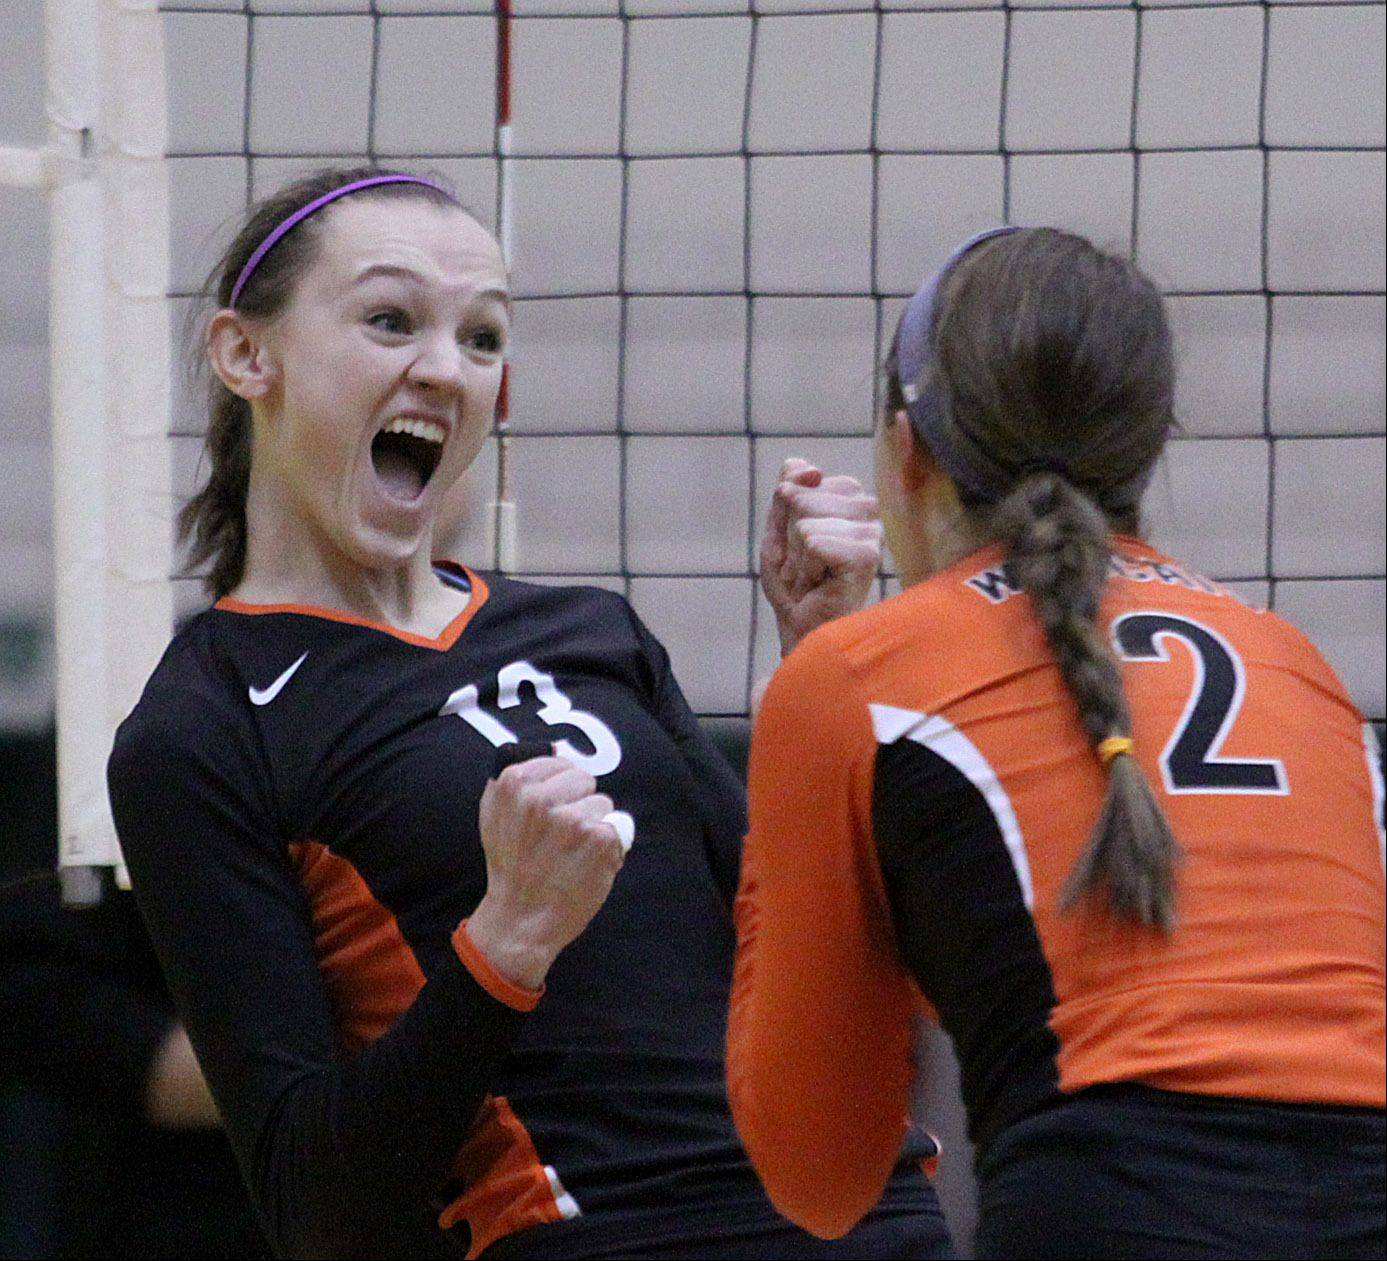 Libertyville's Julia Smagacz, left, celebrates with Kristen Webb during the Wildcats' sectional title victory over Palatine at Fremd High School.